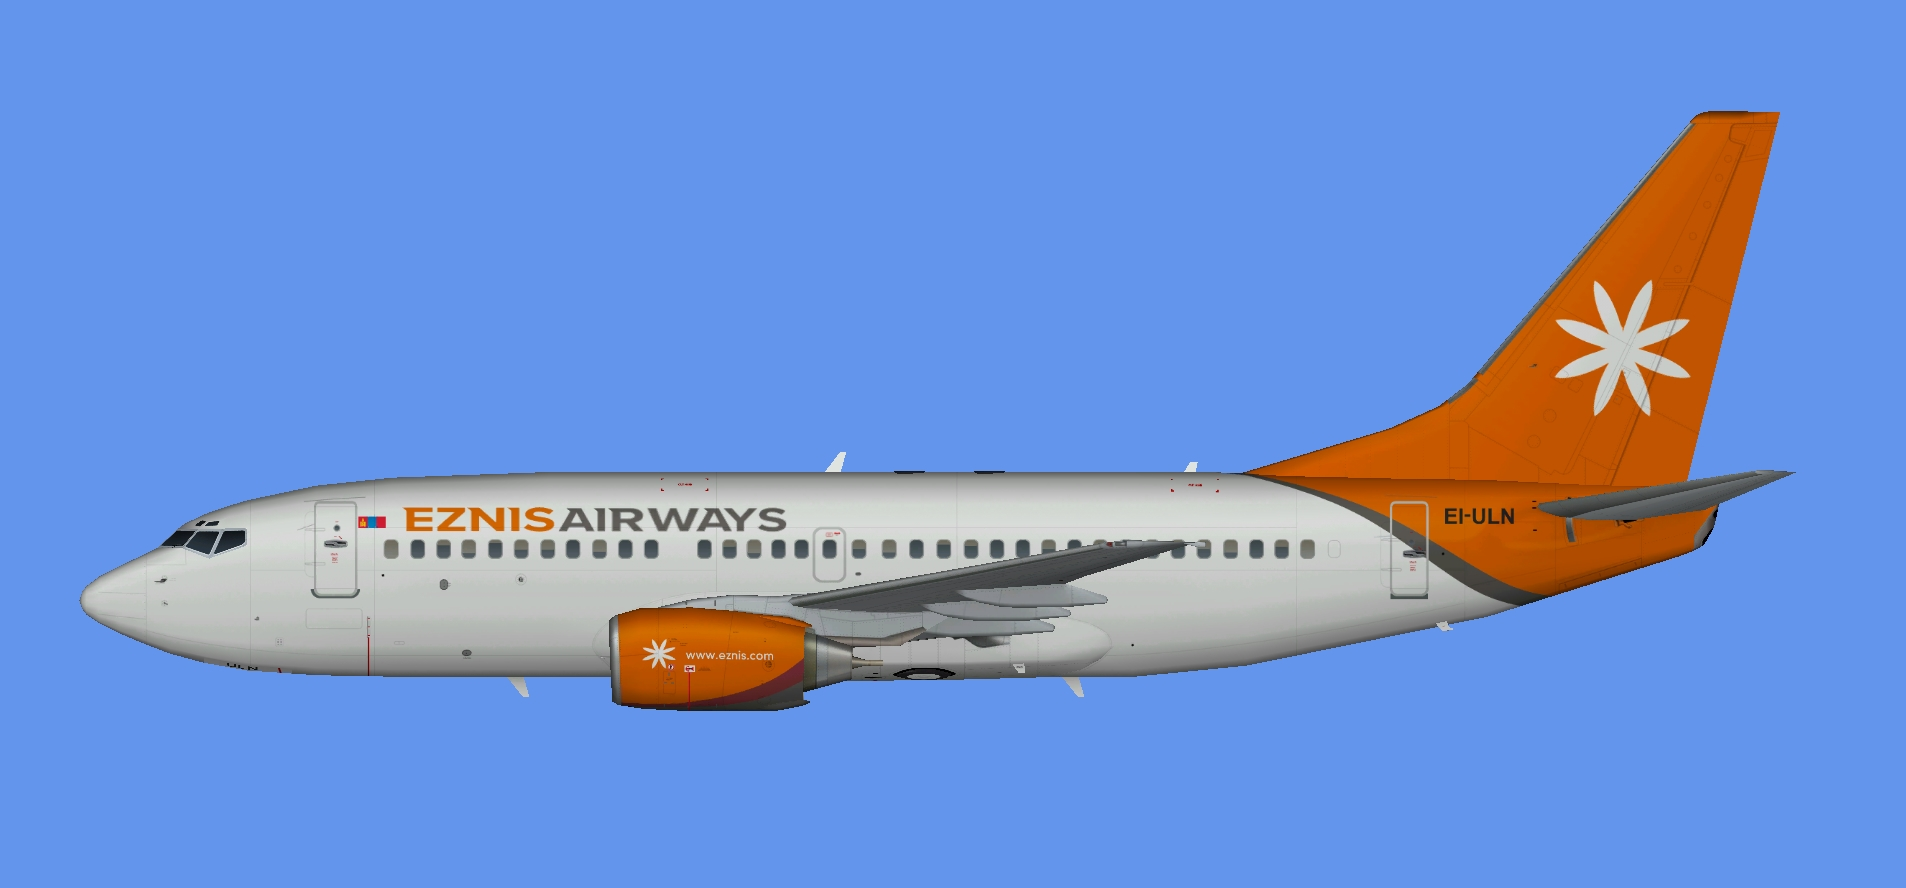 Eznis Airways Boeing 737-700